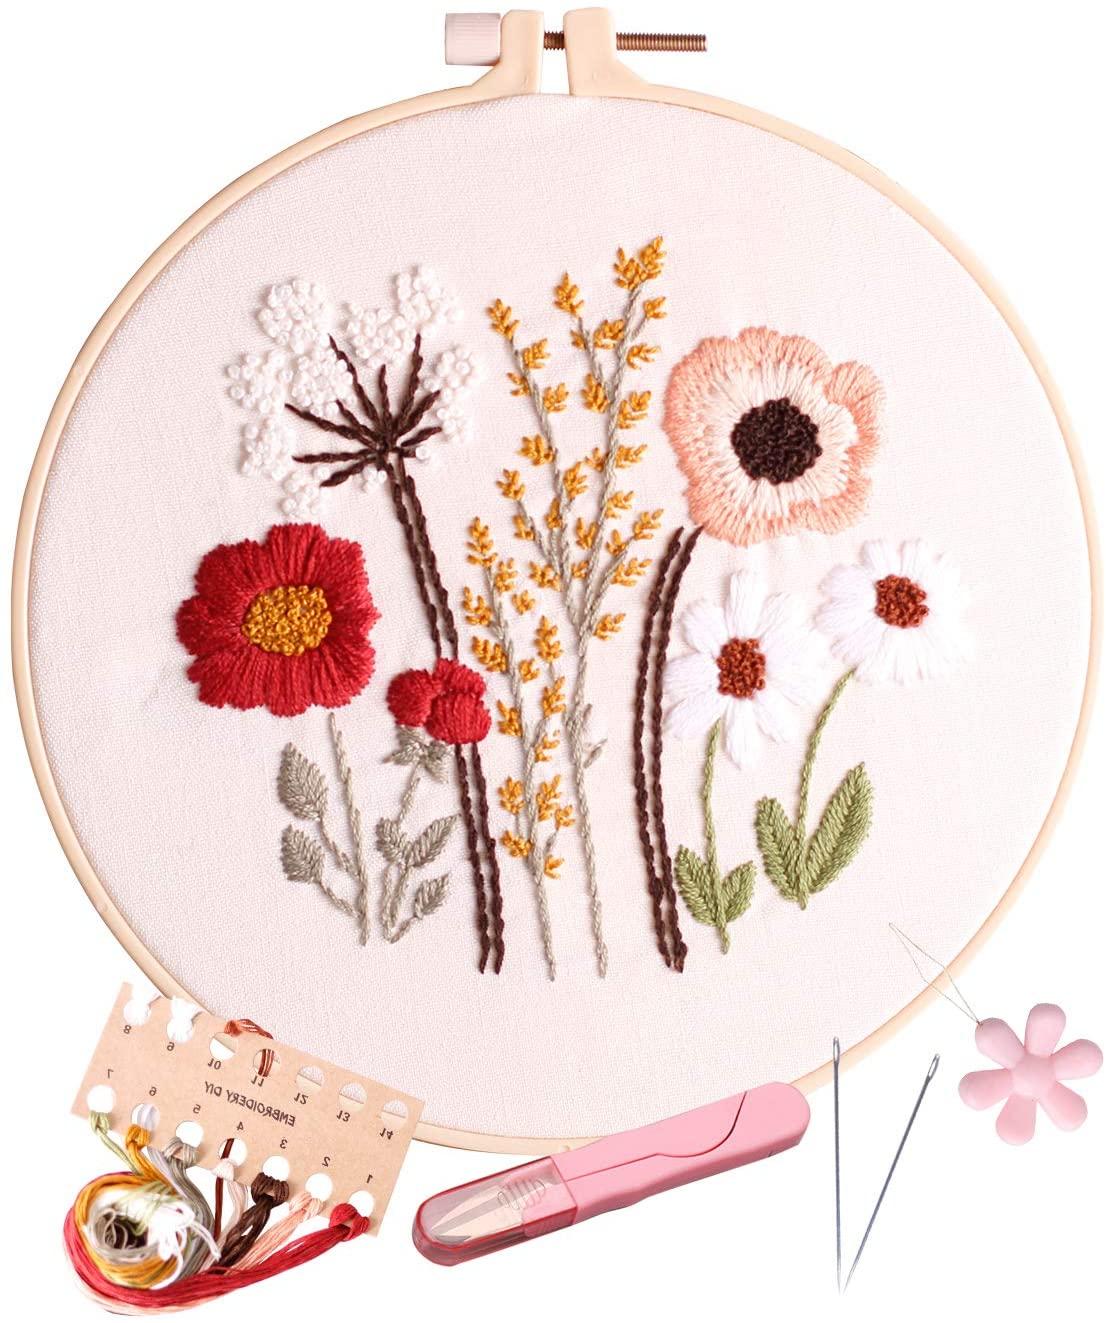 Embroidery Kits for Beginners, Fanryn Stamped Embroidery Kit, Including Embroidery Cloth with Pattern, Bamboo Hoop, Instructions, Color Threads, Needles (Kit-02)